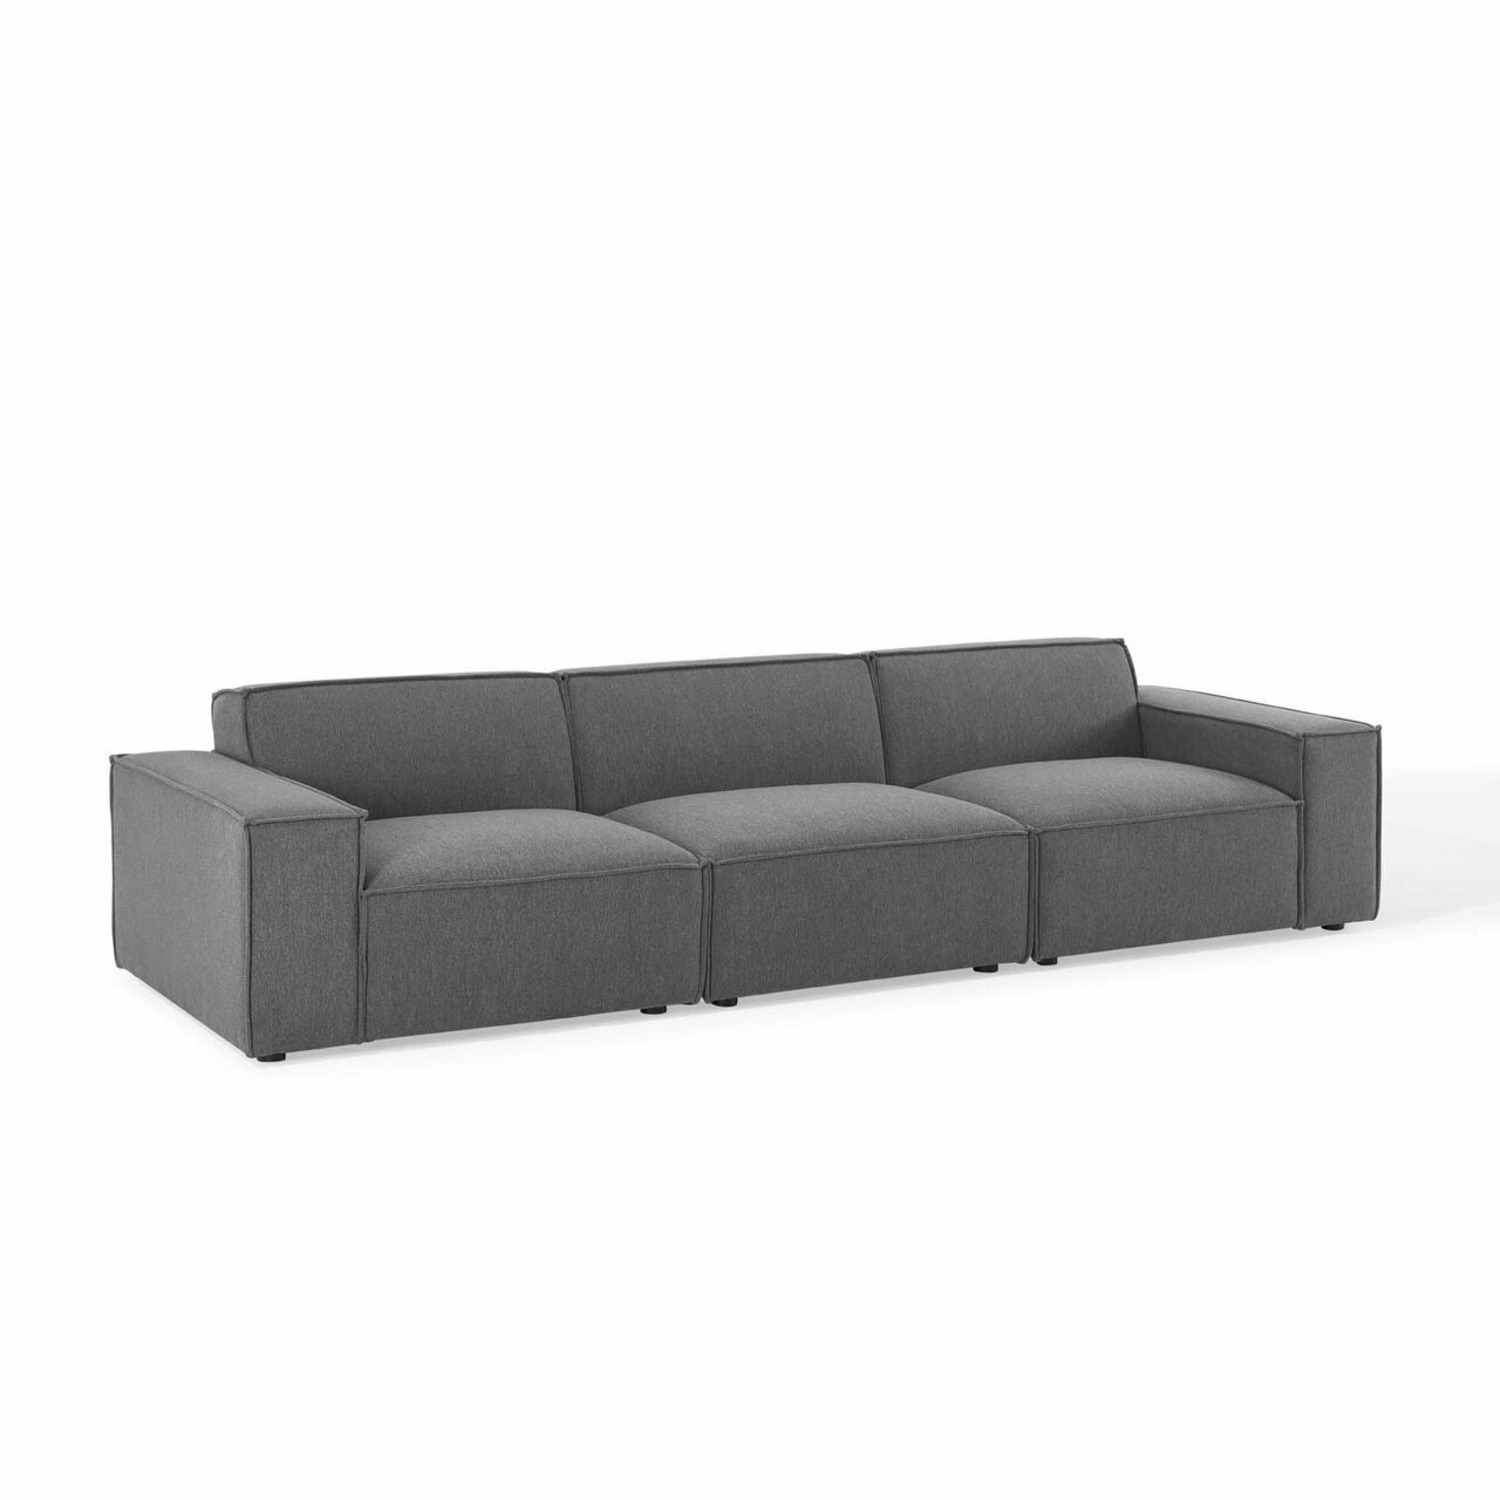 3-Piece Sectional Sofa In Charcoal Upholstery - image-0